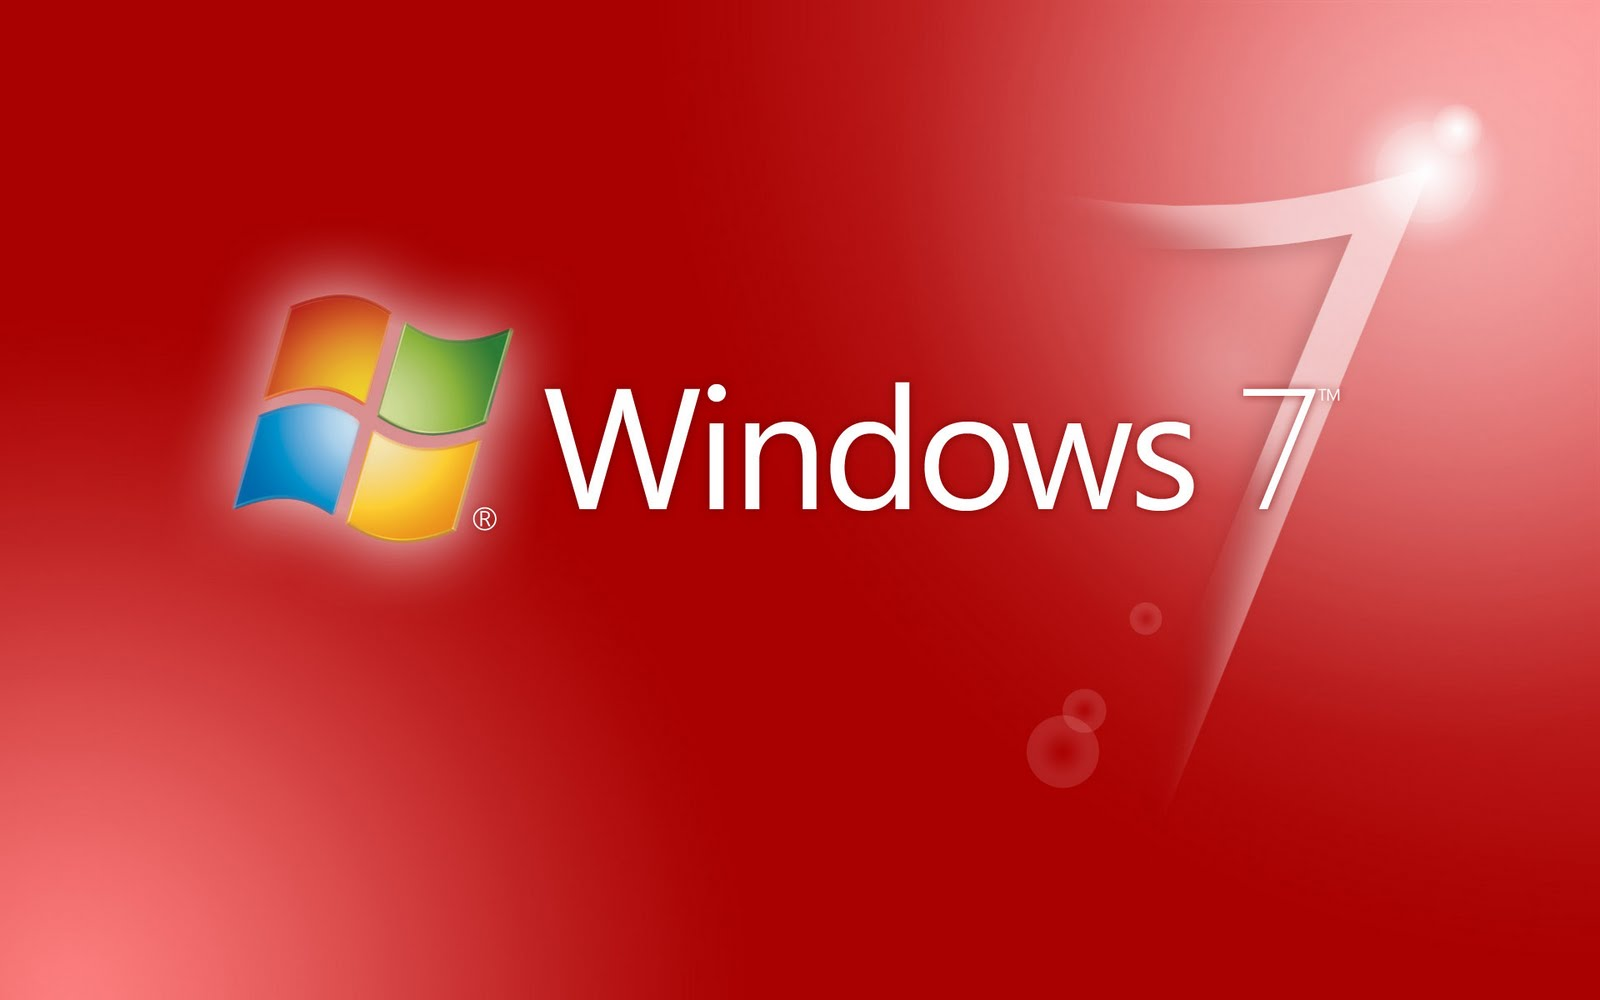 Windows 8 Wallpaper Pack 7 Themes Apps Directories 1600x1000